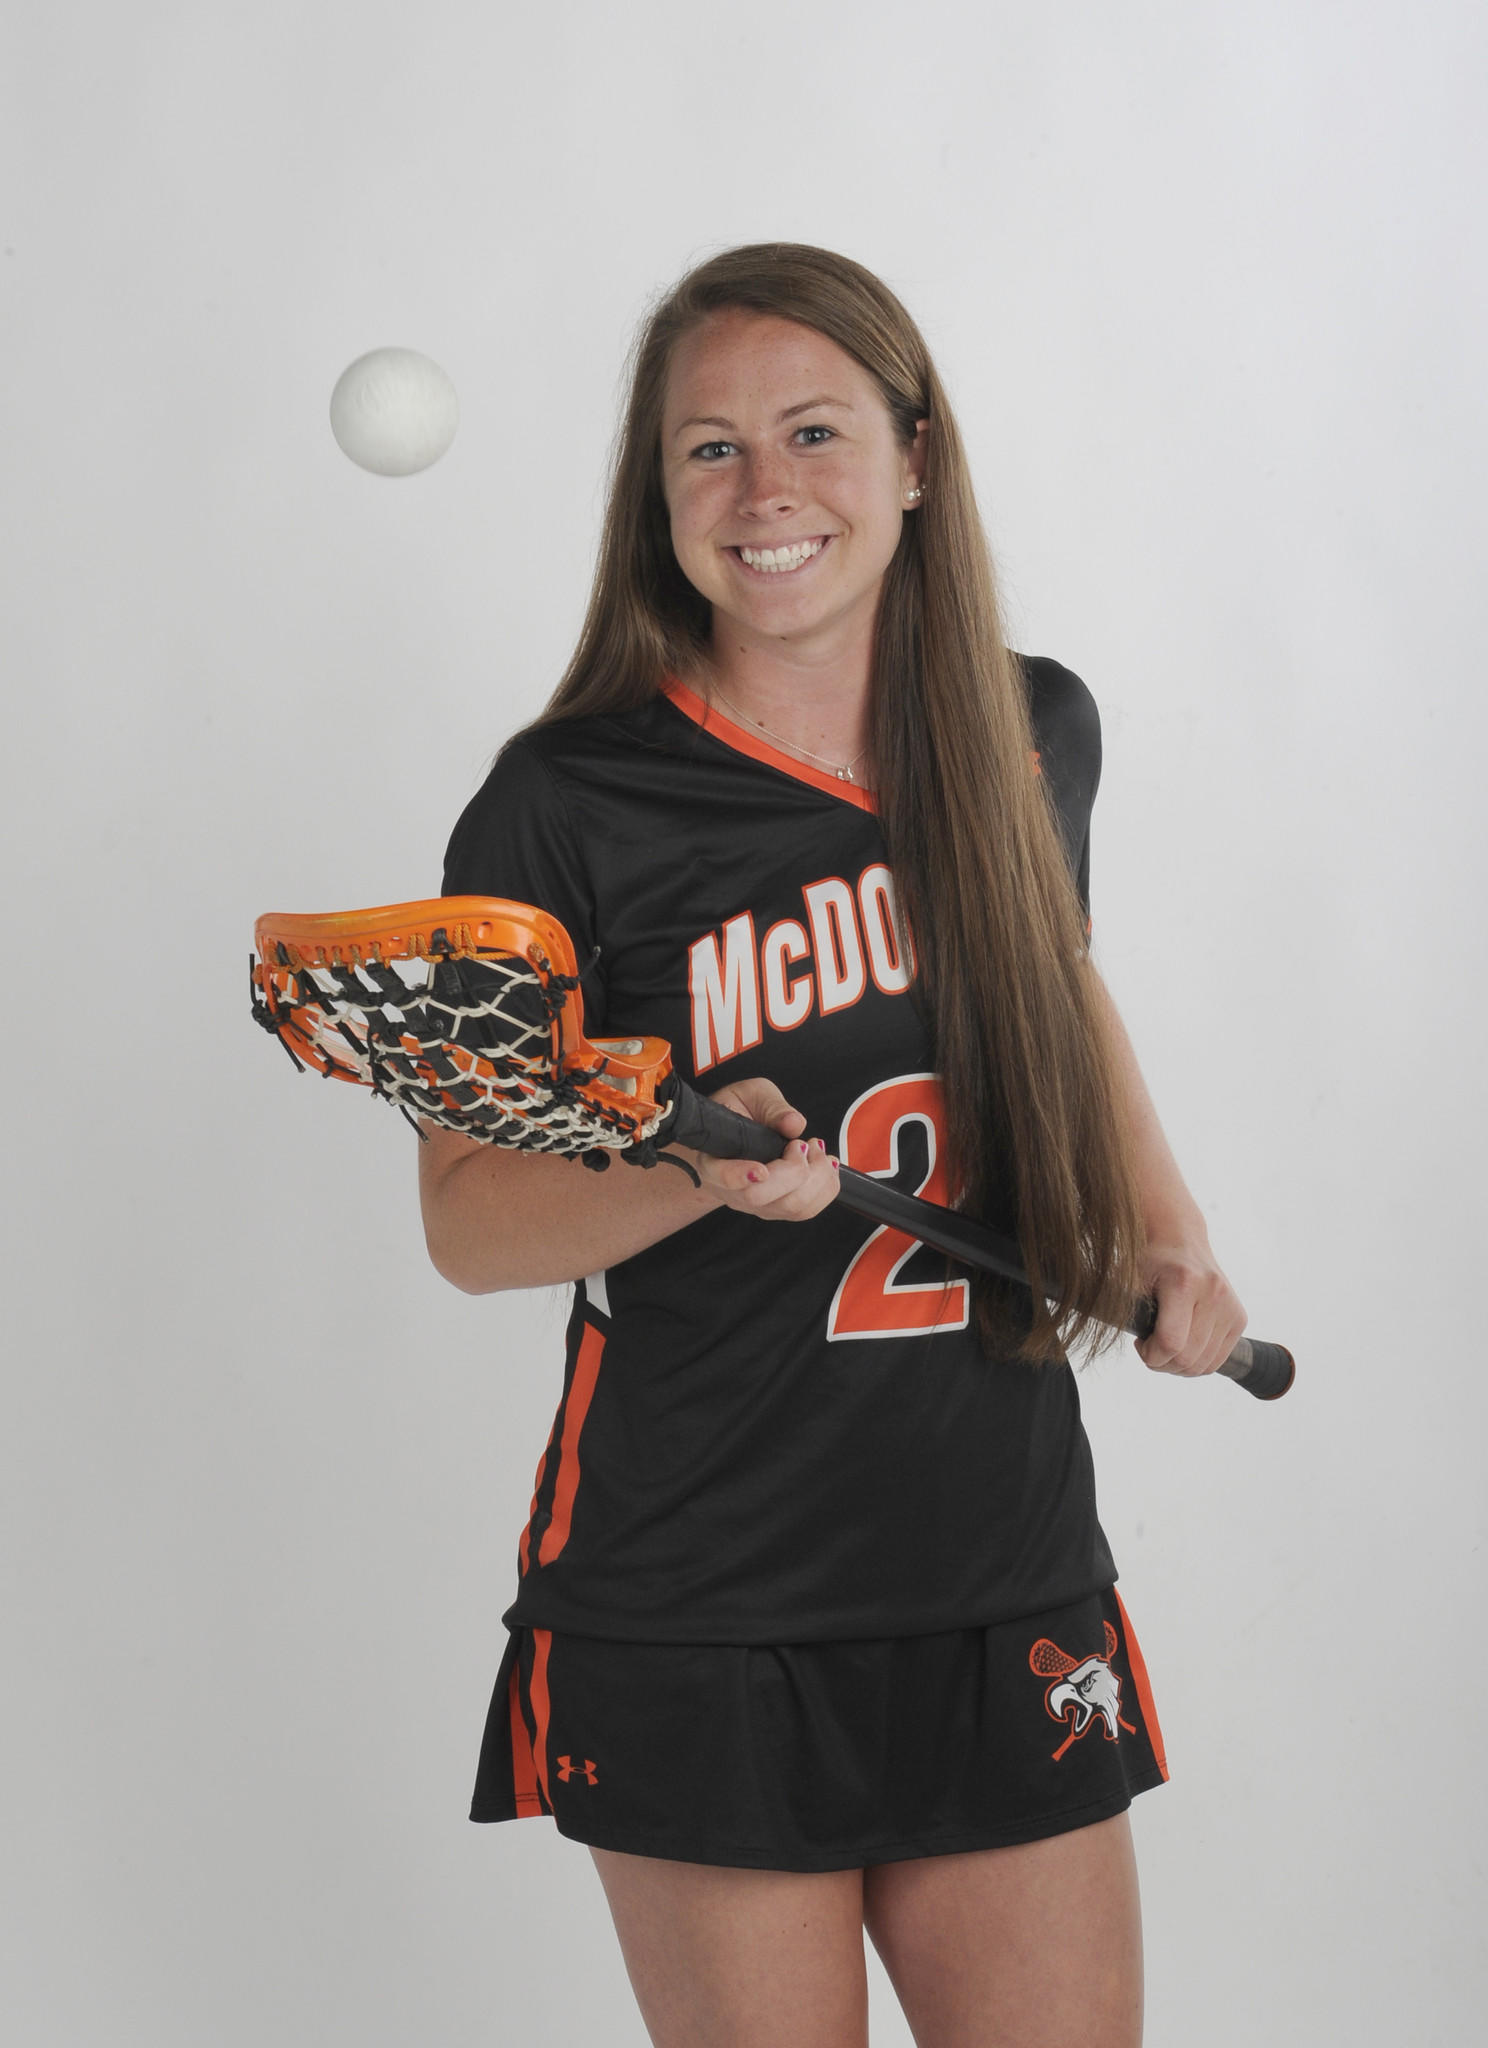 Megan Whittle of McDonogh is the All-Metro girls lacrosse Player of the Year.